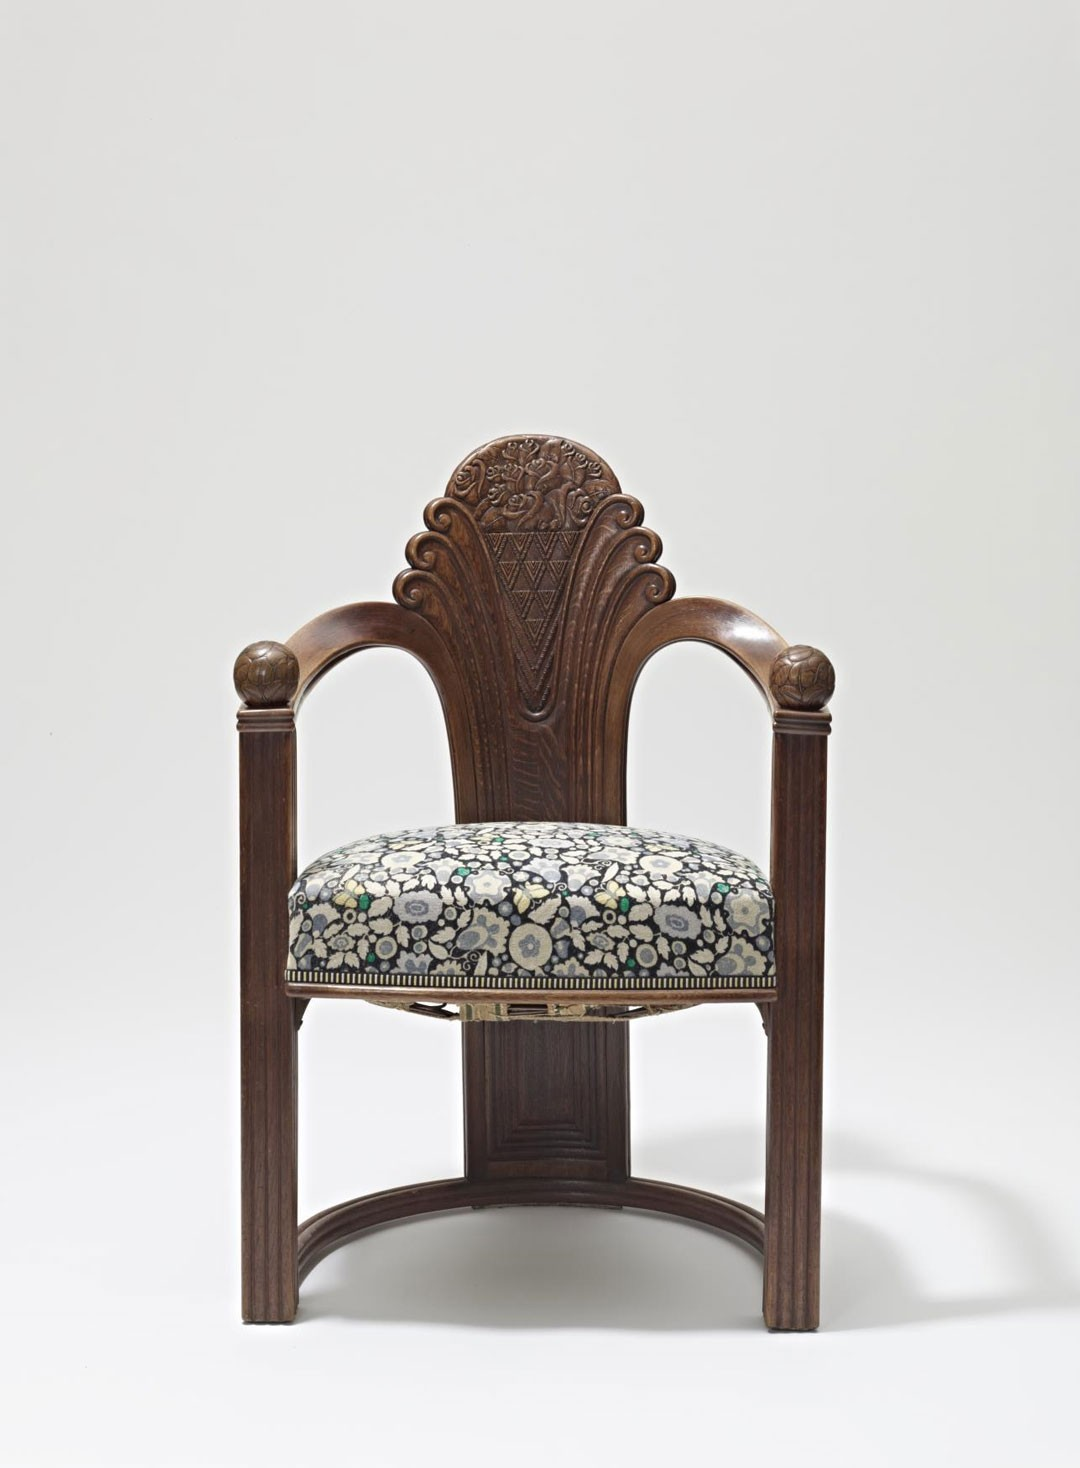 <BODY>Otto Prutscher, Fauteuil, Vienna, ca. 1919<br />Execution: Gebrüder Thonet<br />Oak, carved; beechwood, bent; upholstery with textile cover<br />© MAK/Georg Mayer</BODY>